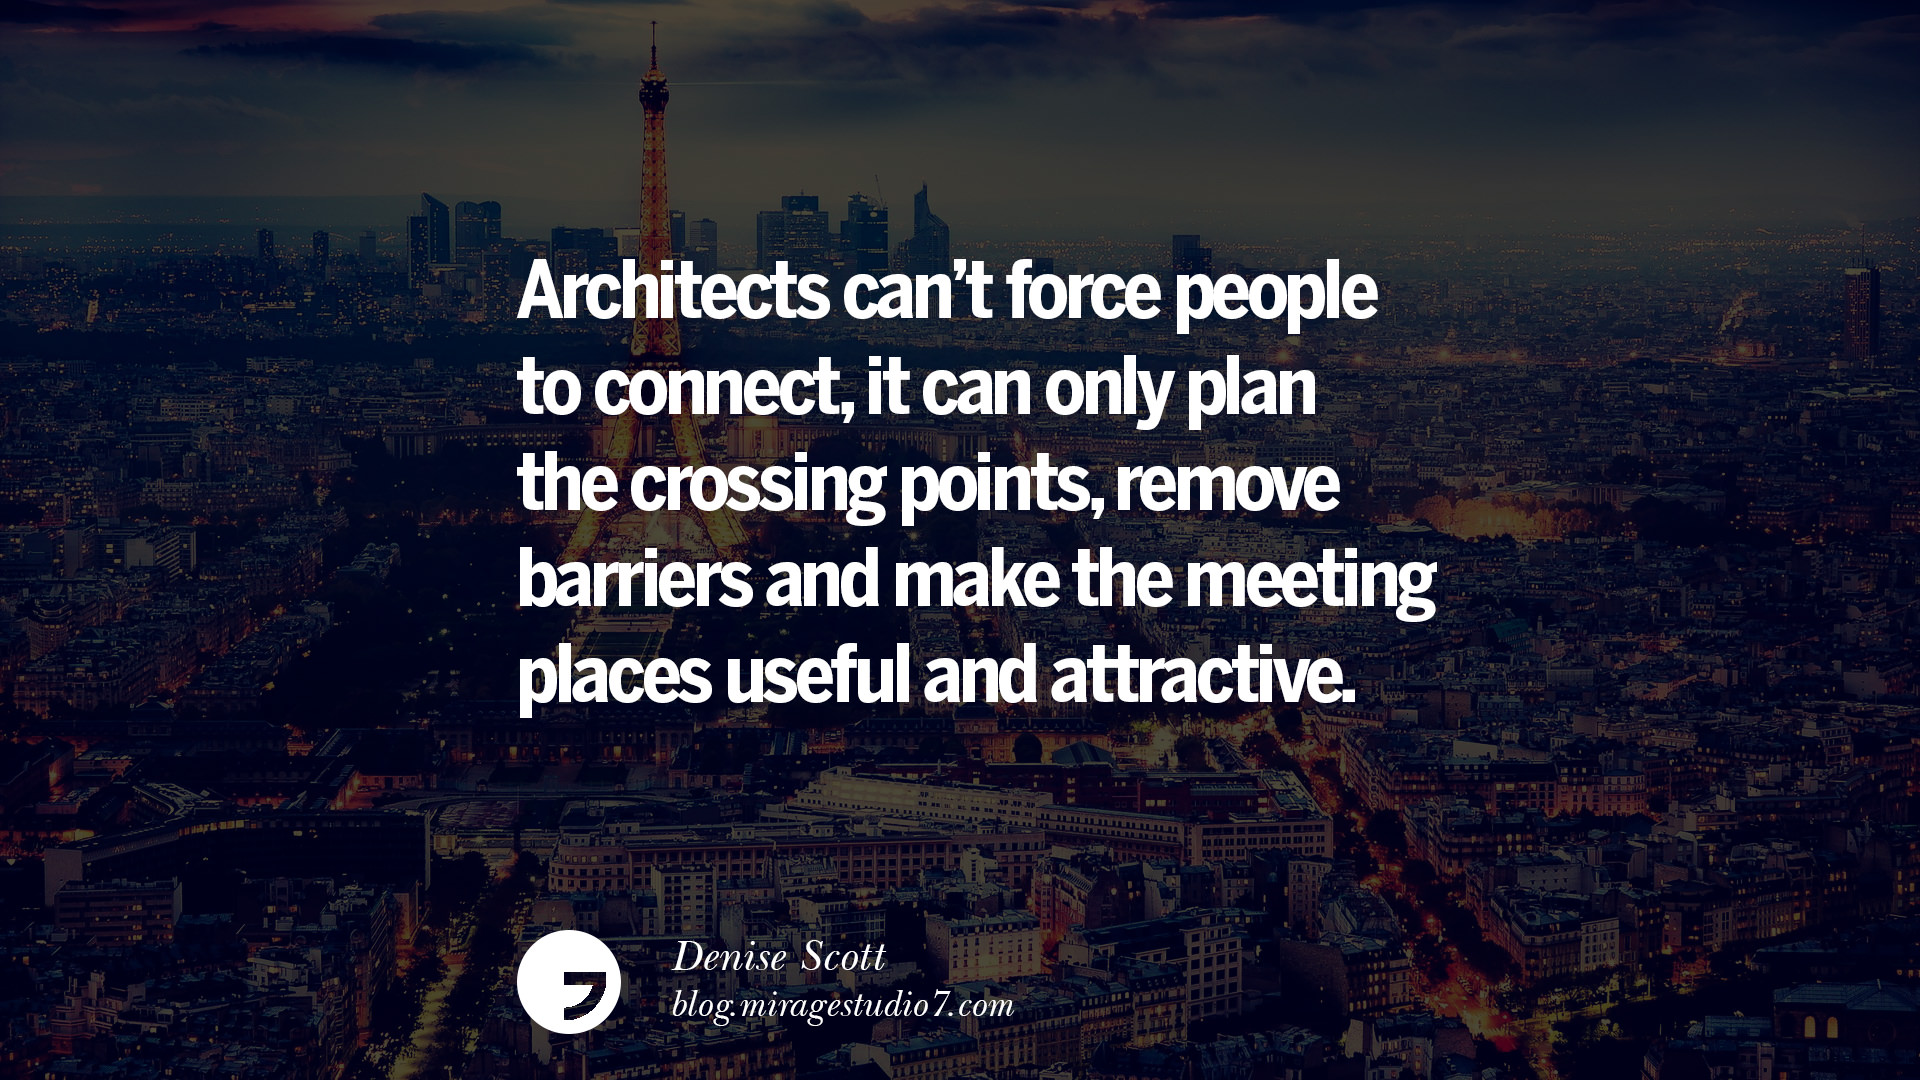 How To Make A Quote Cool 28 Inspirational Architecture Quotesfamous Architects And